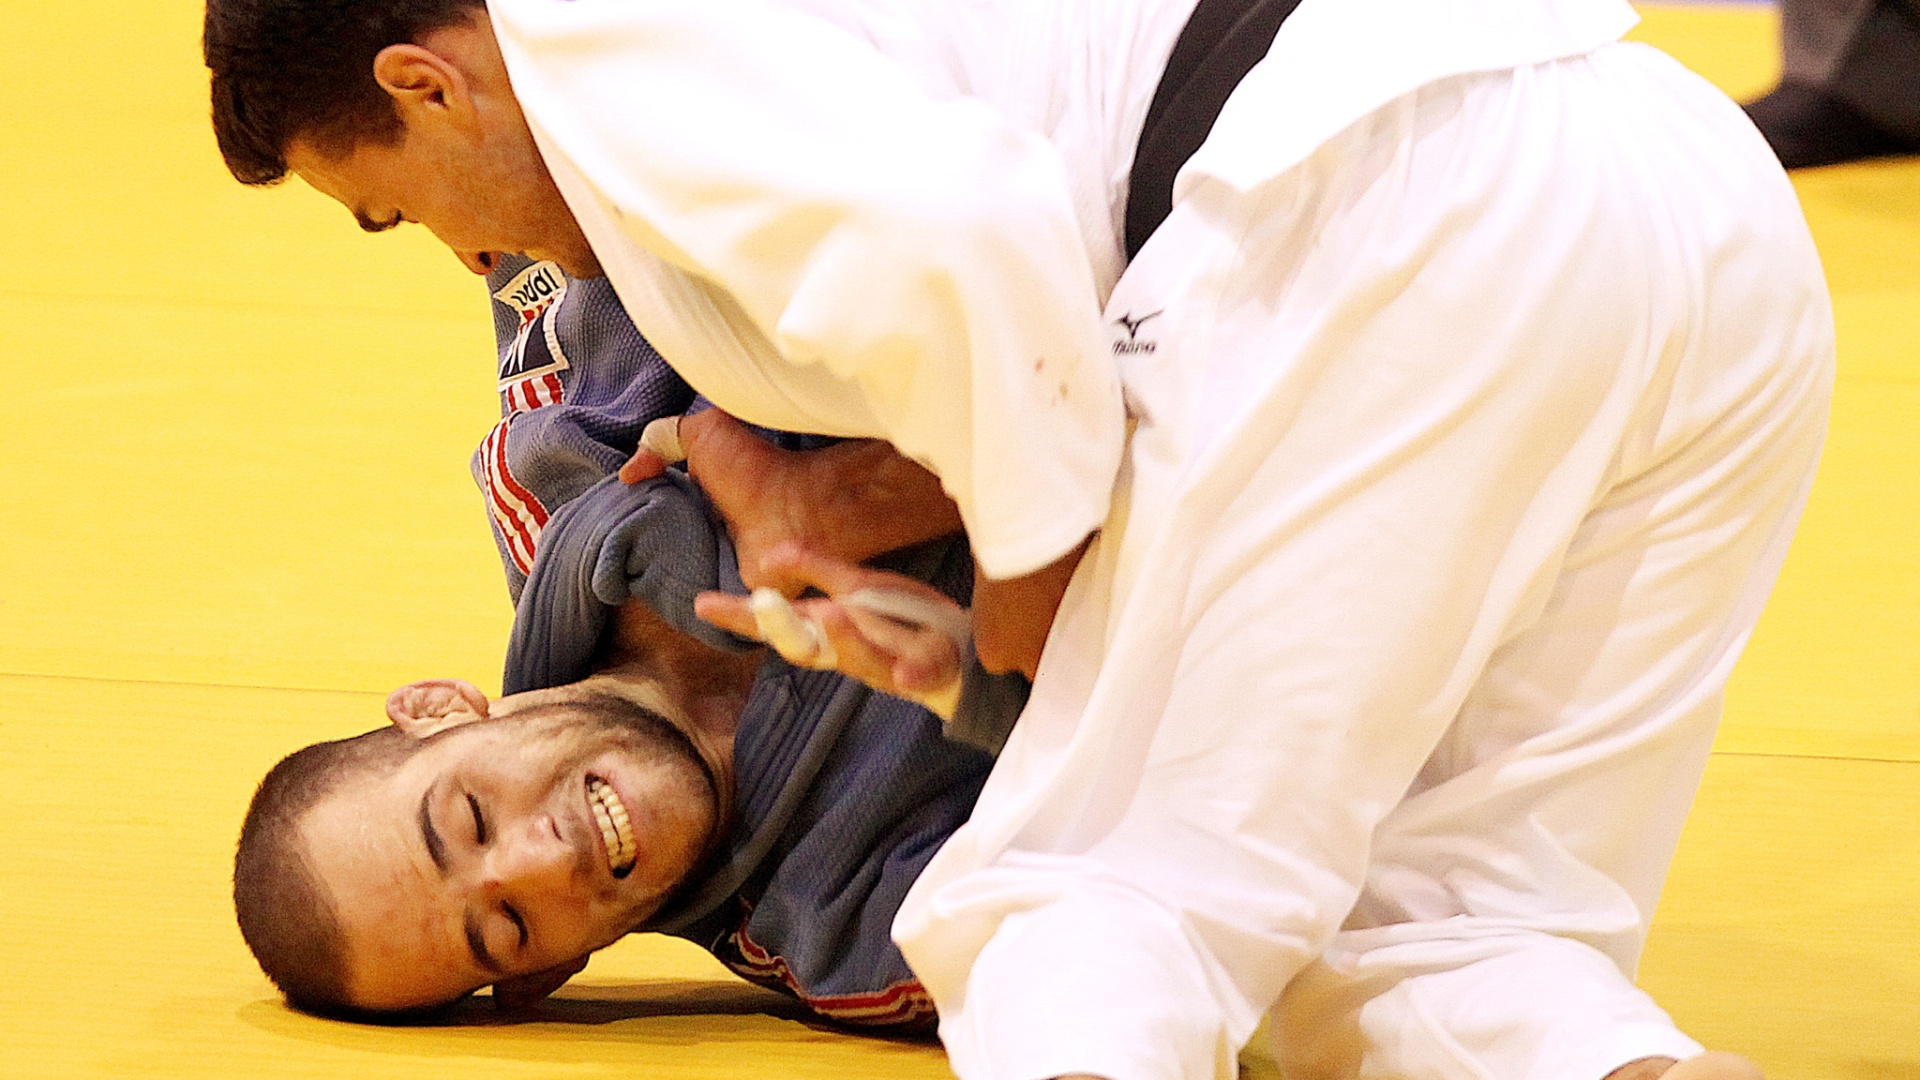 Leandro Guilheiro aplica ippon no porto-riquenho Gabriel Miranda para conquistar o ouro no Pan de Guadalajara (27/10/2011)